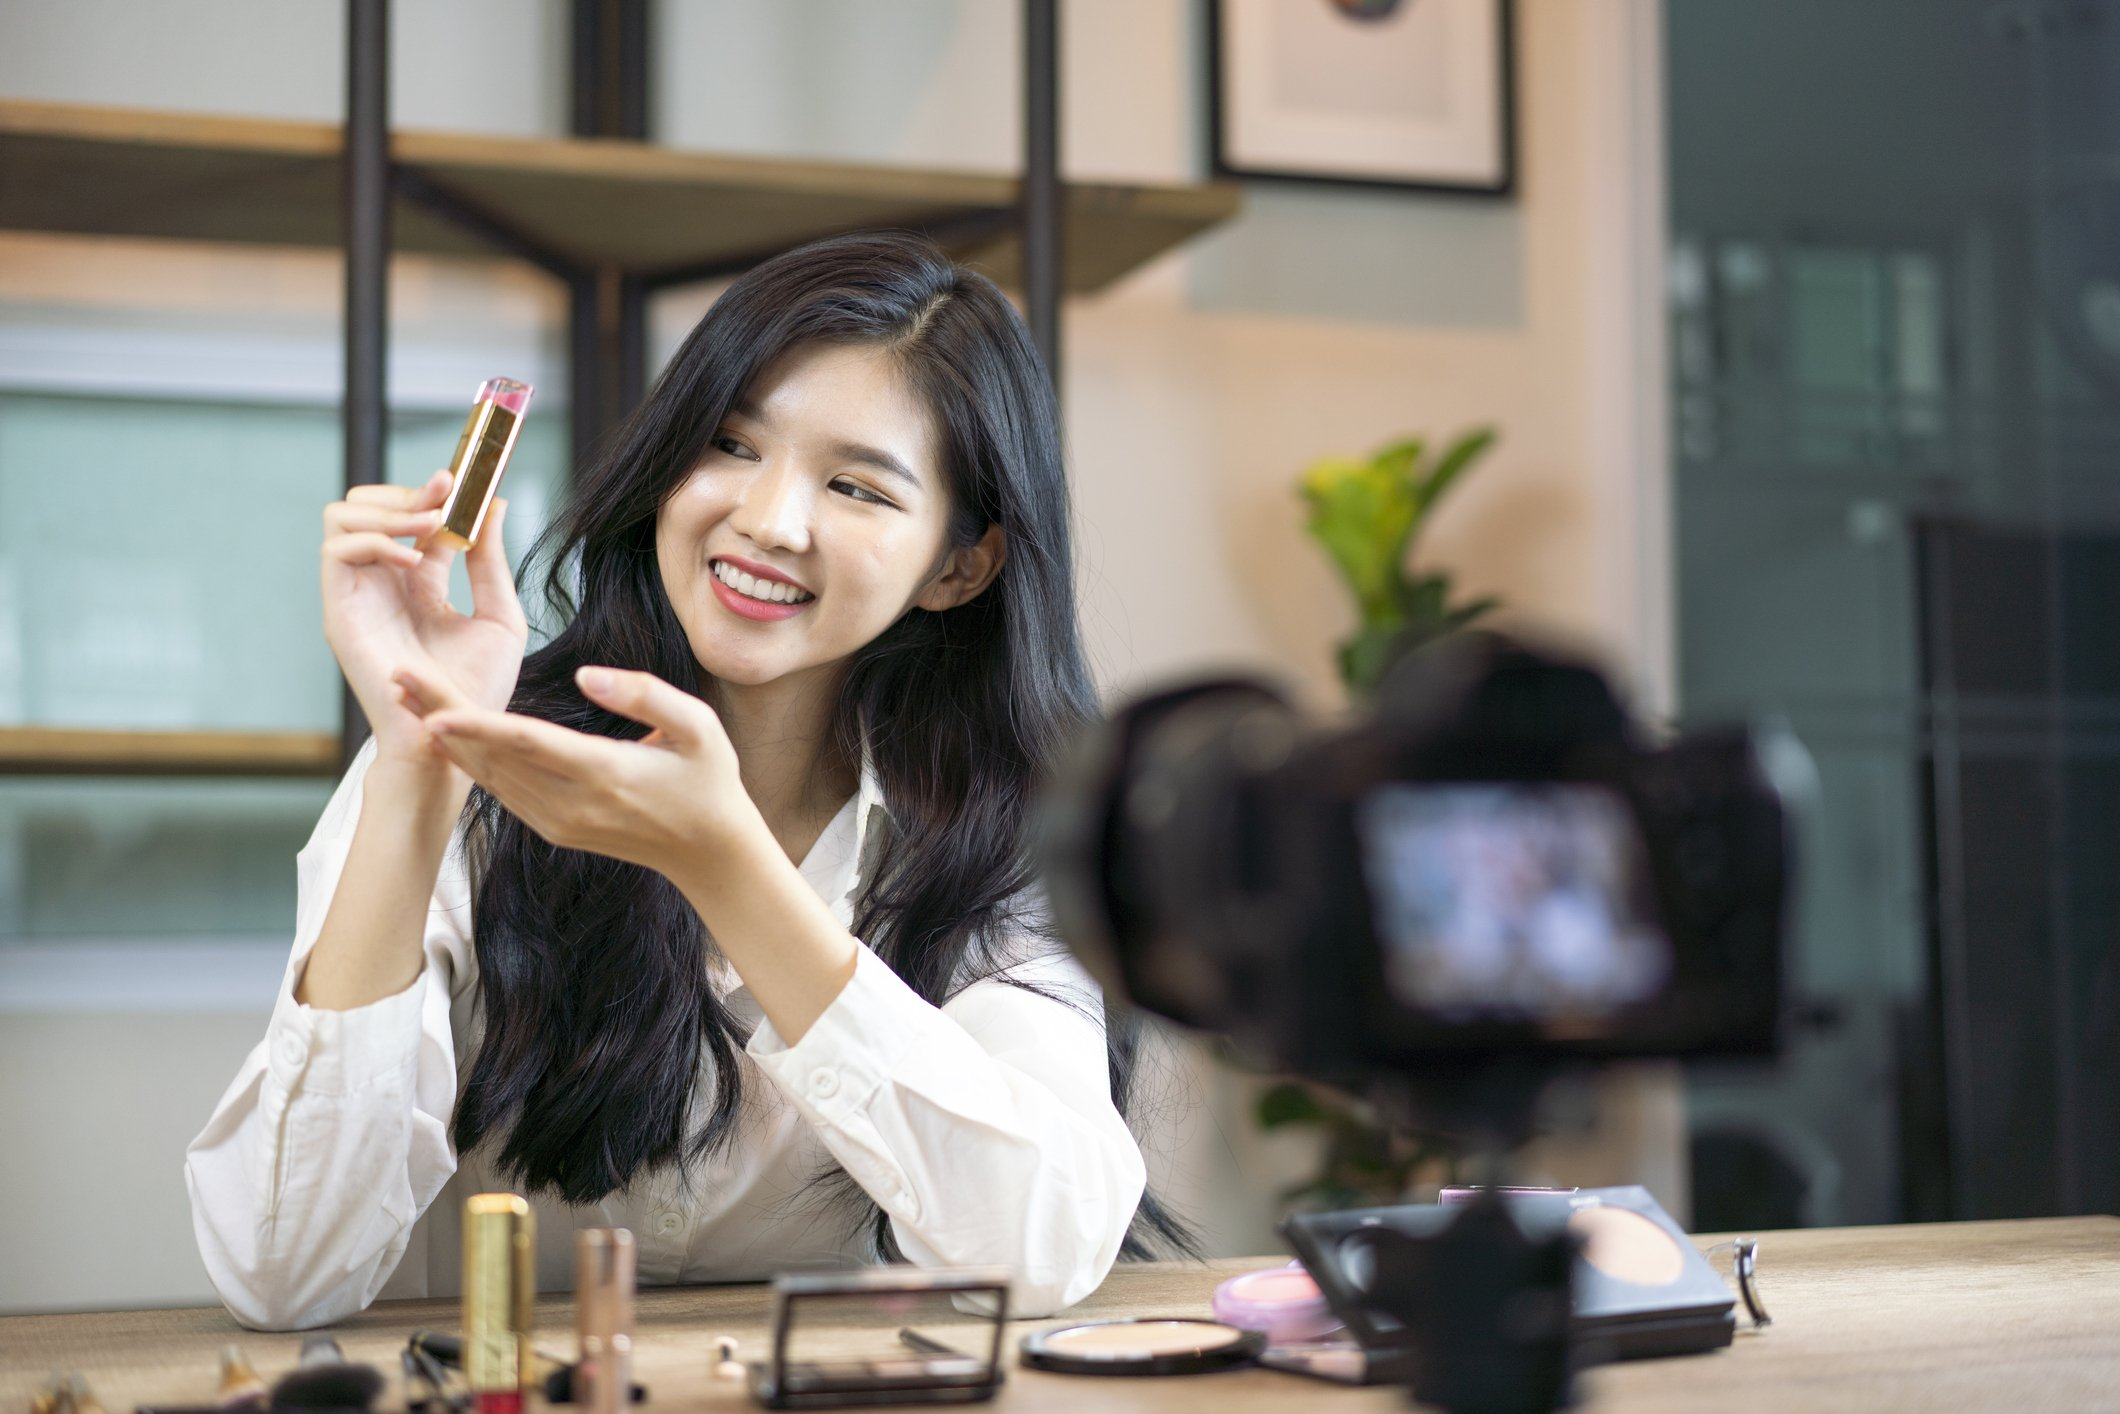 A young Asian female sits in front of personal camera and smiles as she holds up pink lipstick for a vlog video, Thailand | Source: Getty Images